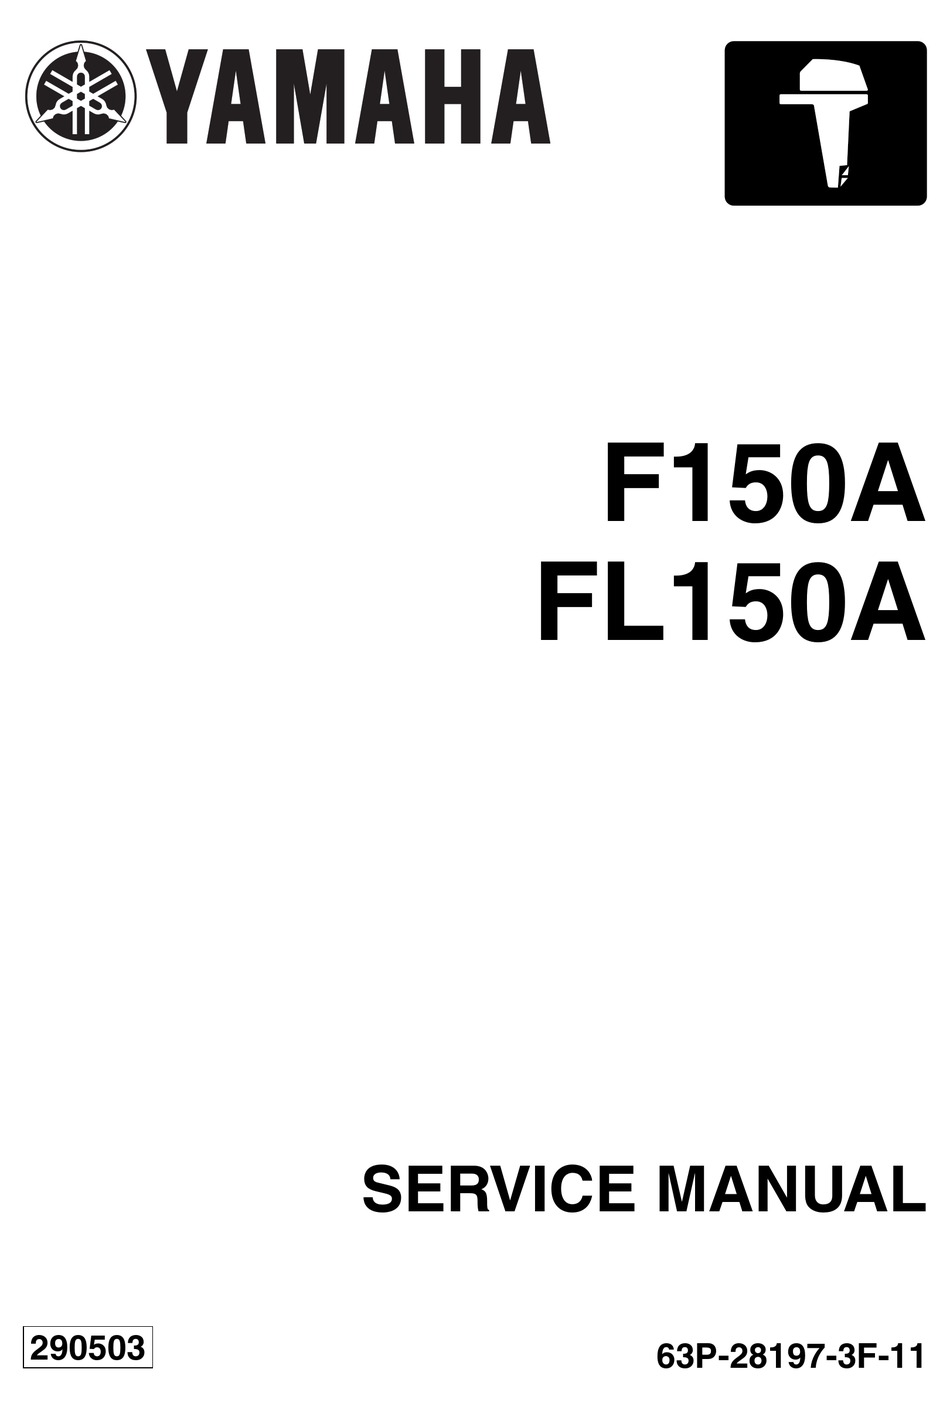 YAMAHA F150A SERVICE MANUAL Pdf Download | ManualsLibManualsLib